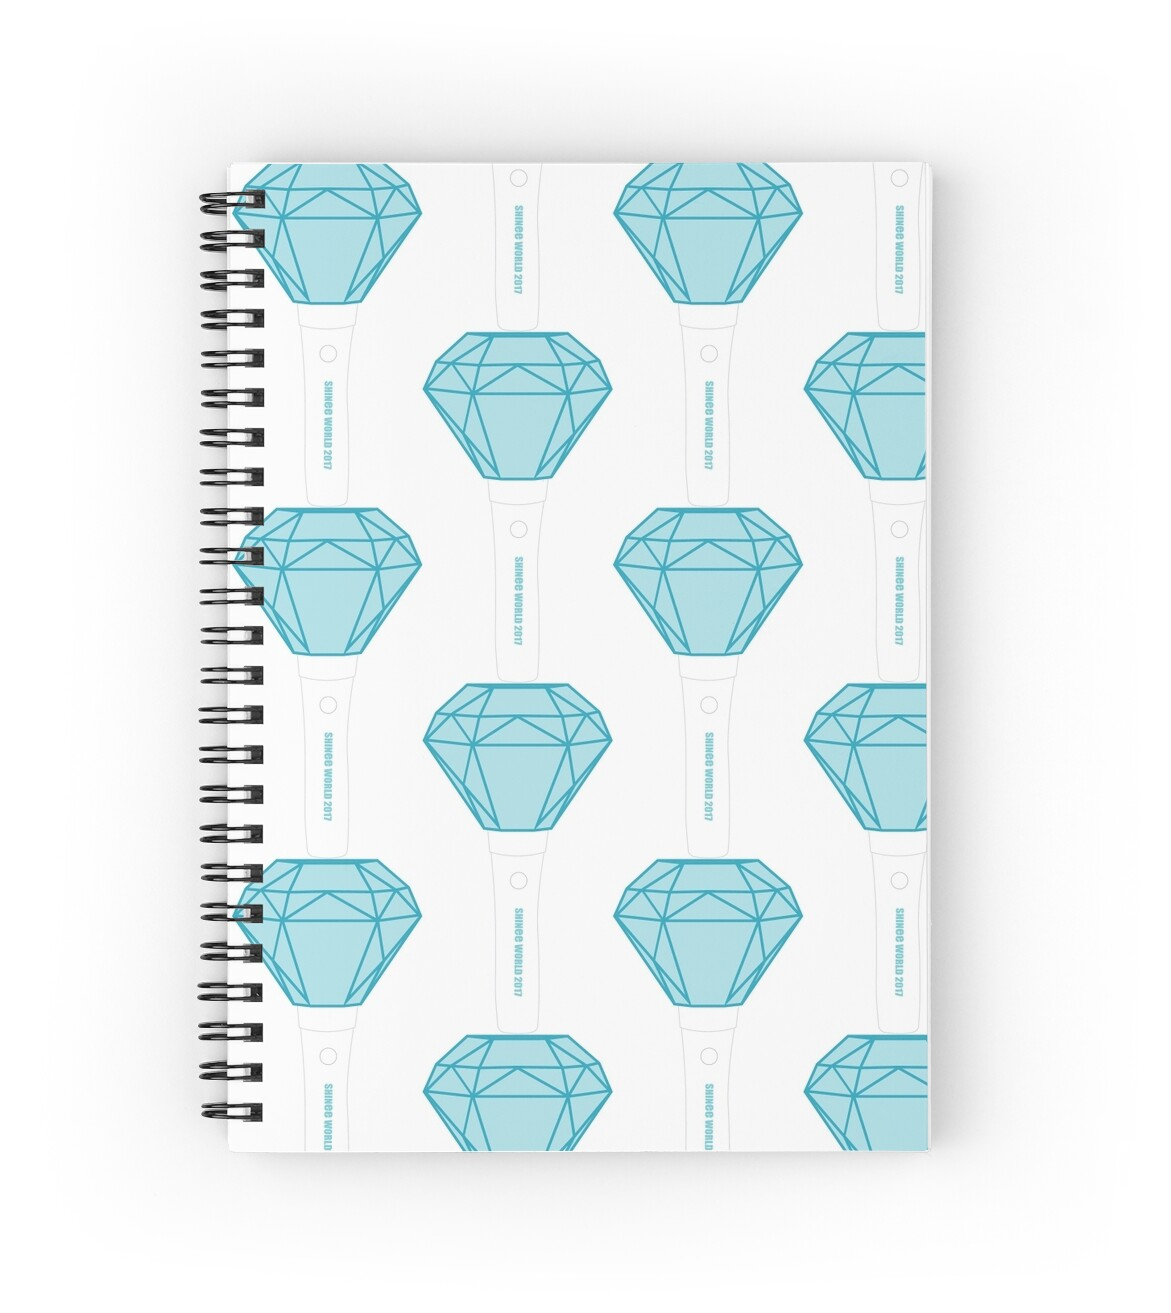 "SHINee Lightstick Ver. 2"" Spiral Notebooks by ThaliMarie 